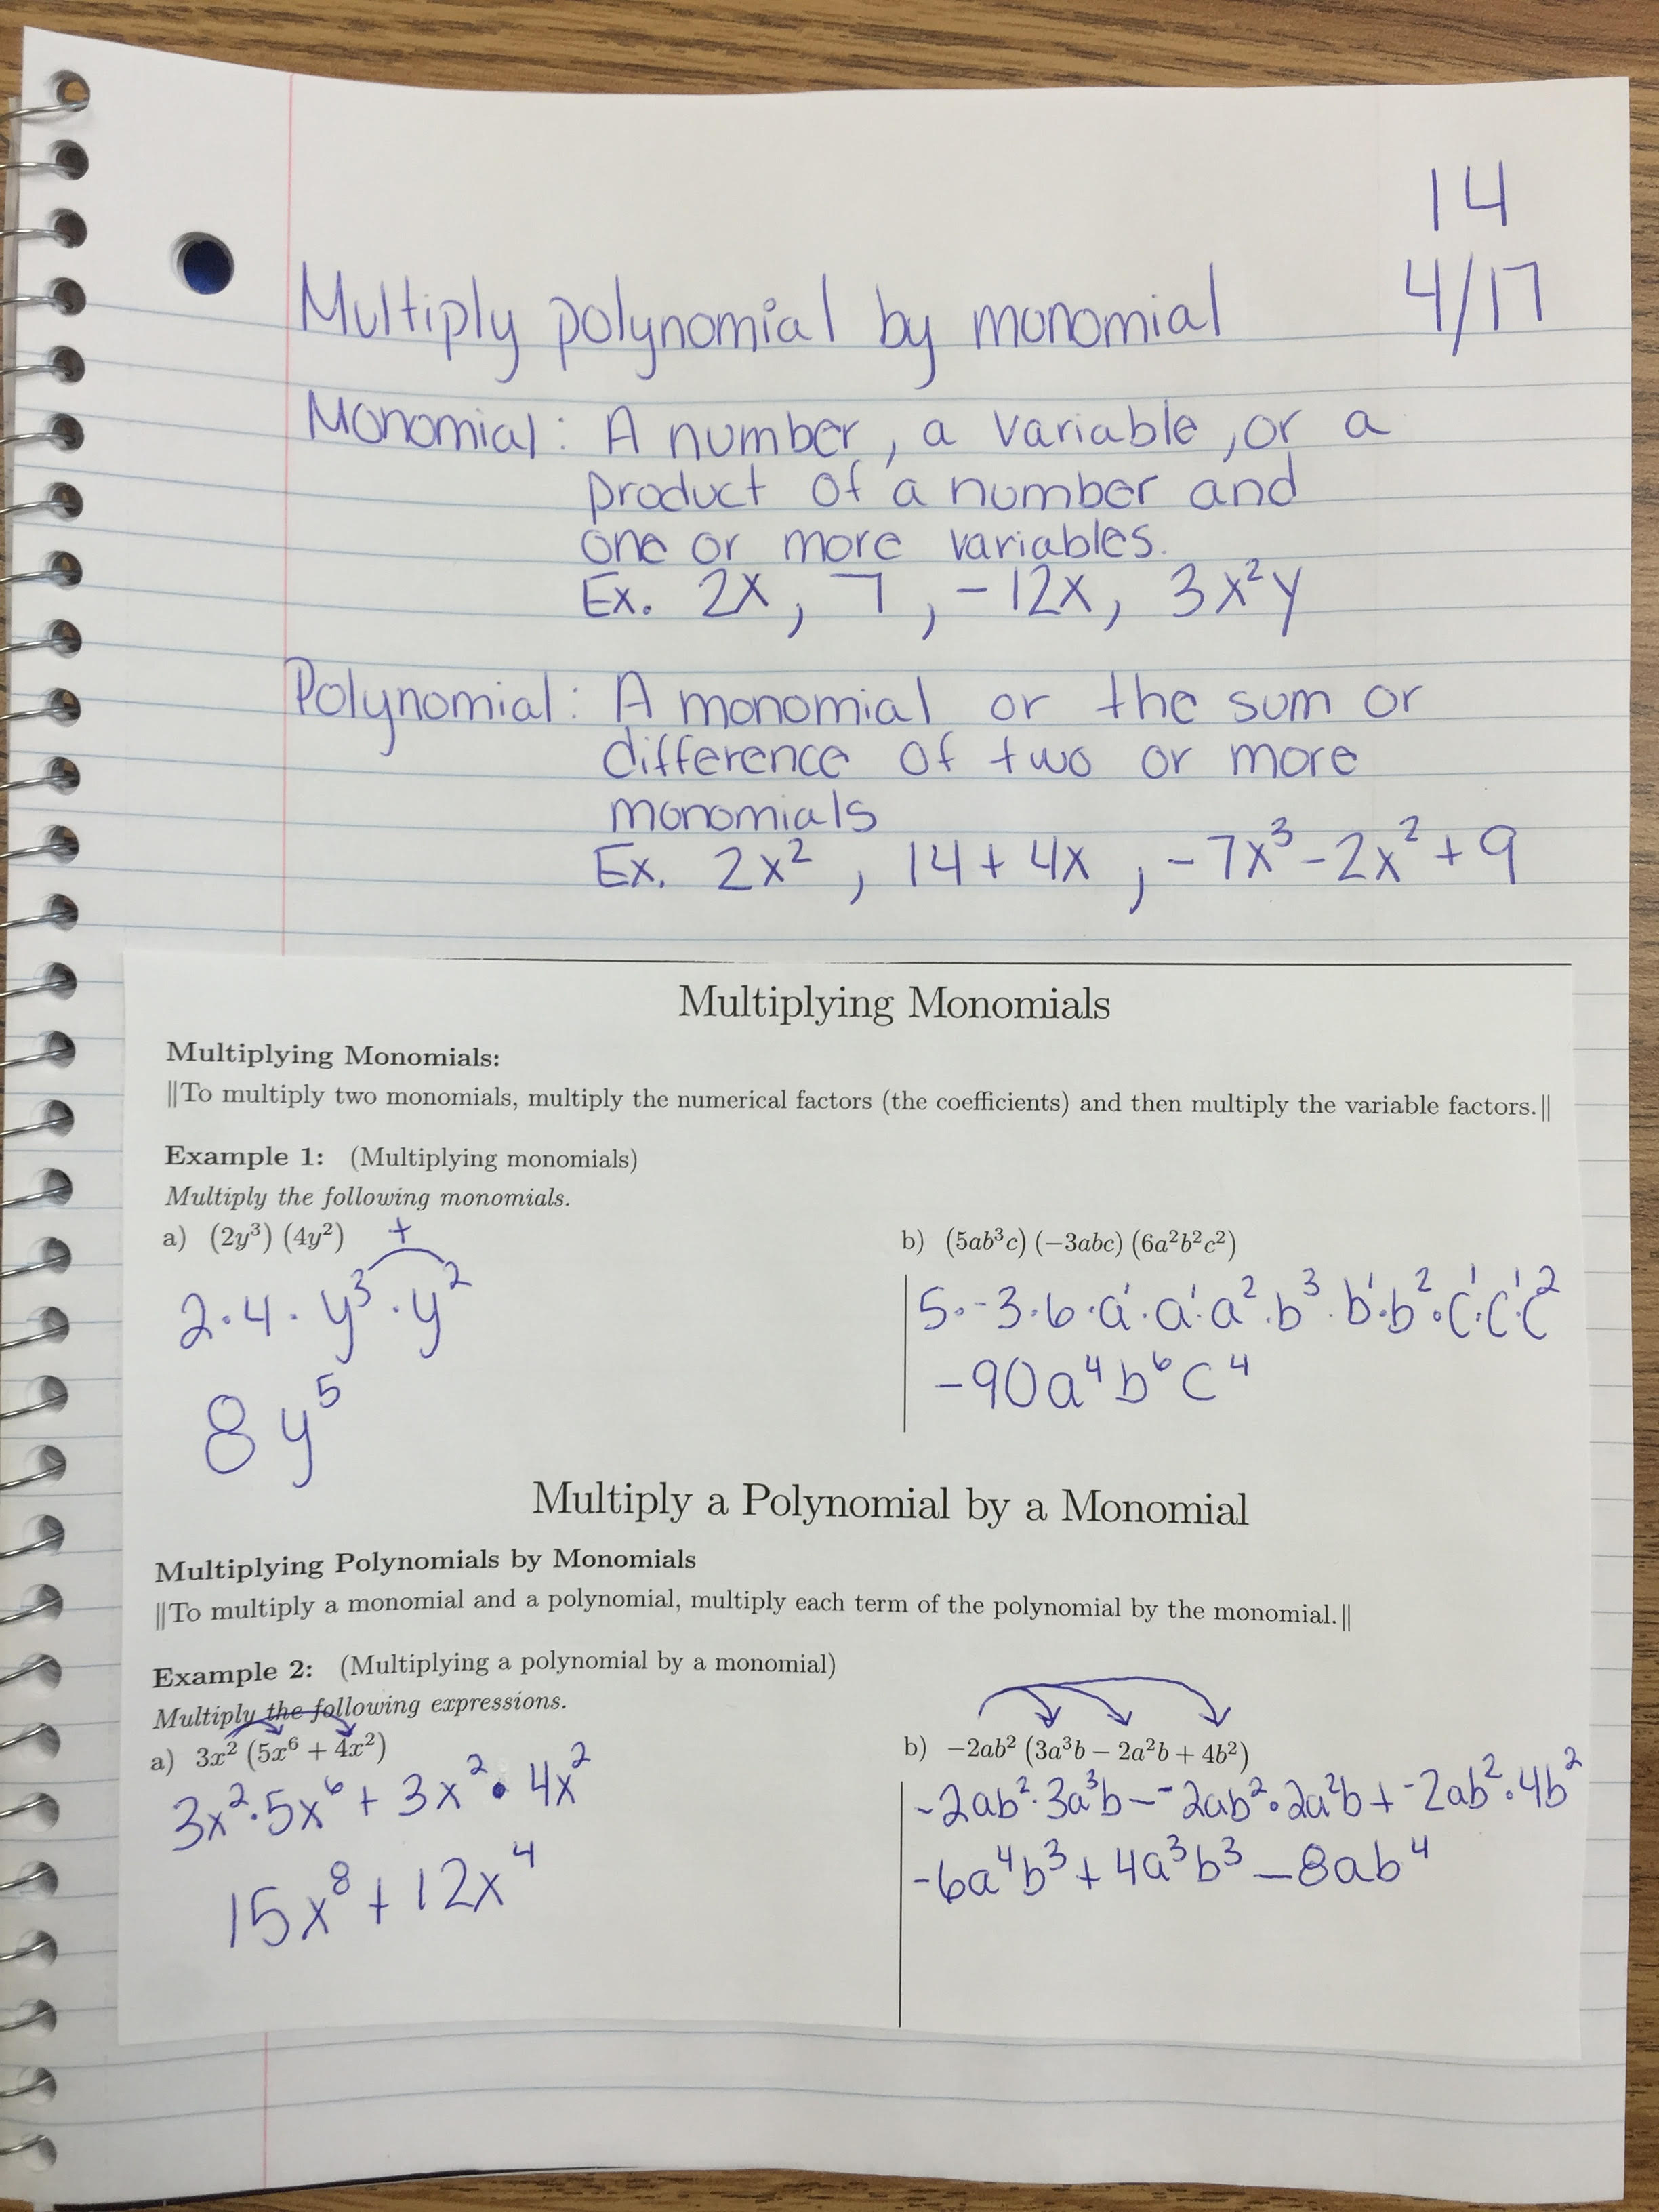 Algebra 1 – Multiplying Polynomials by Monomials Worksheet